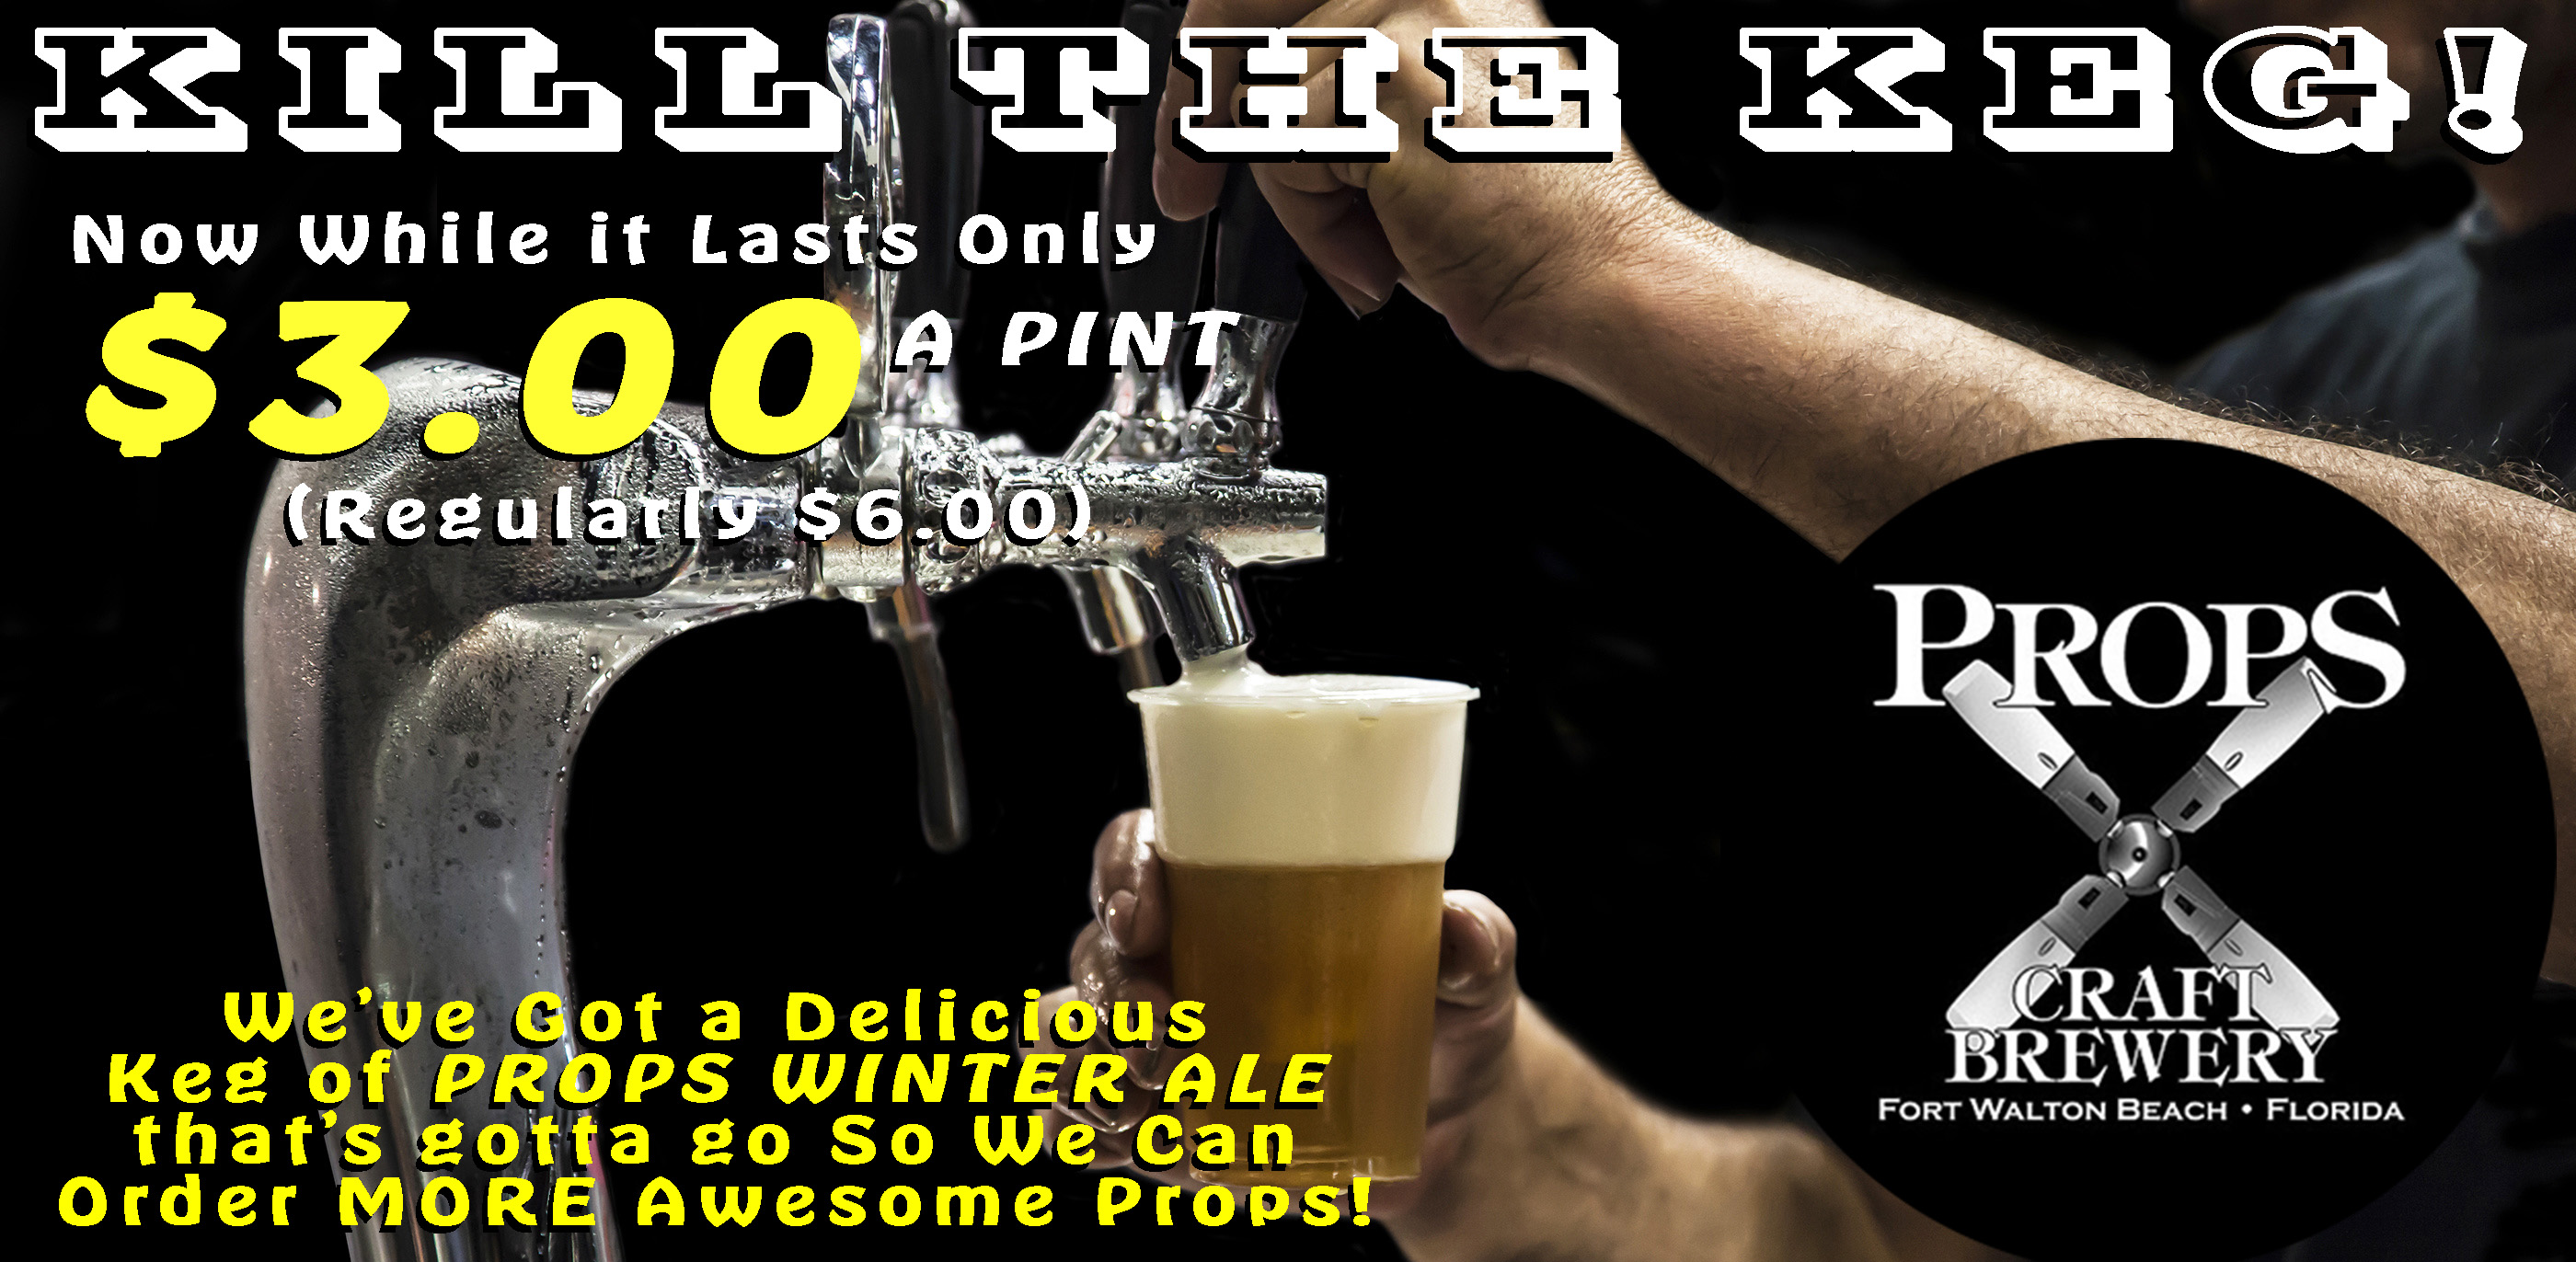 Craft Beer in Destin Florida at Landshark's Pizza Company - Kill The Keg Craft Beer on Sale!